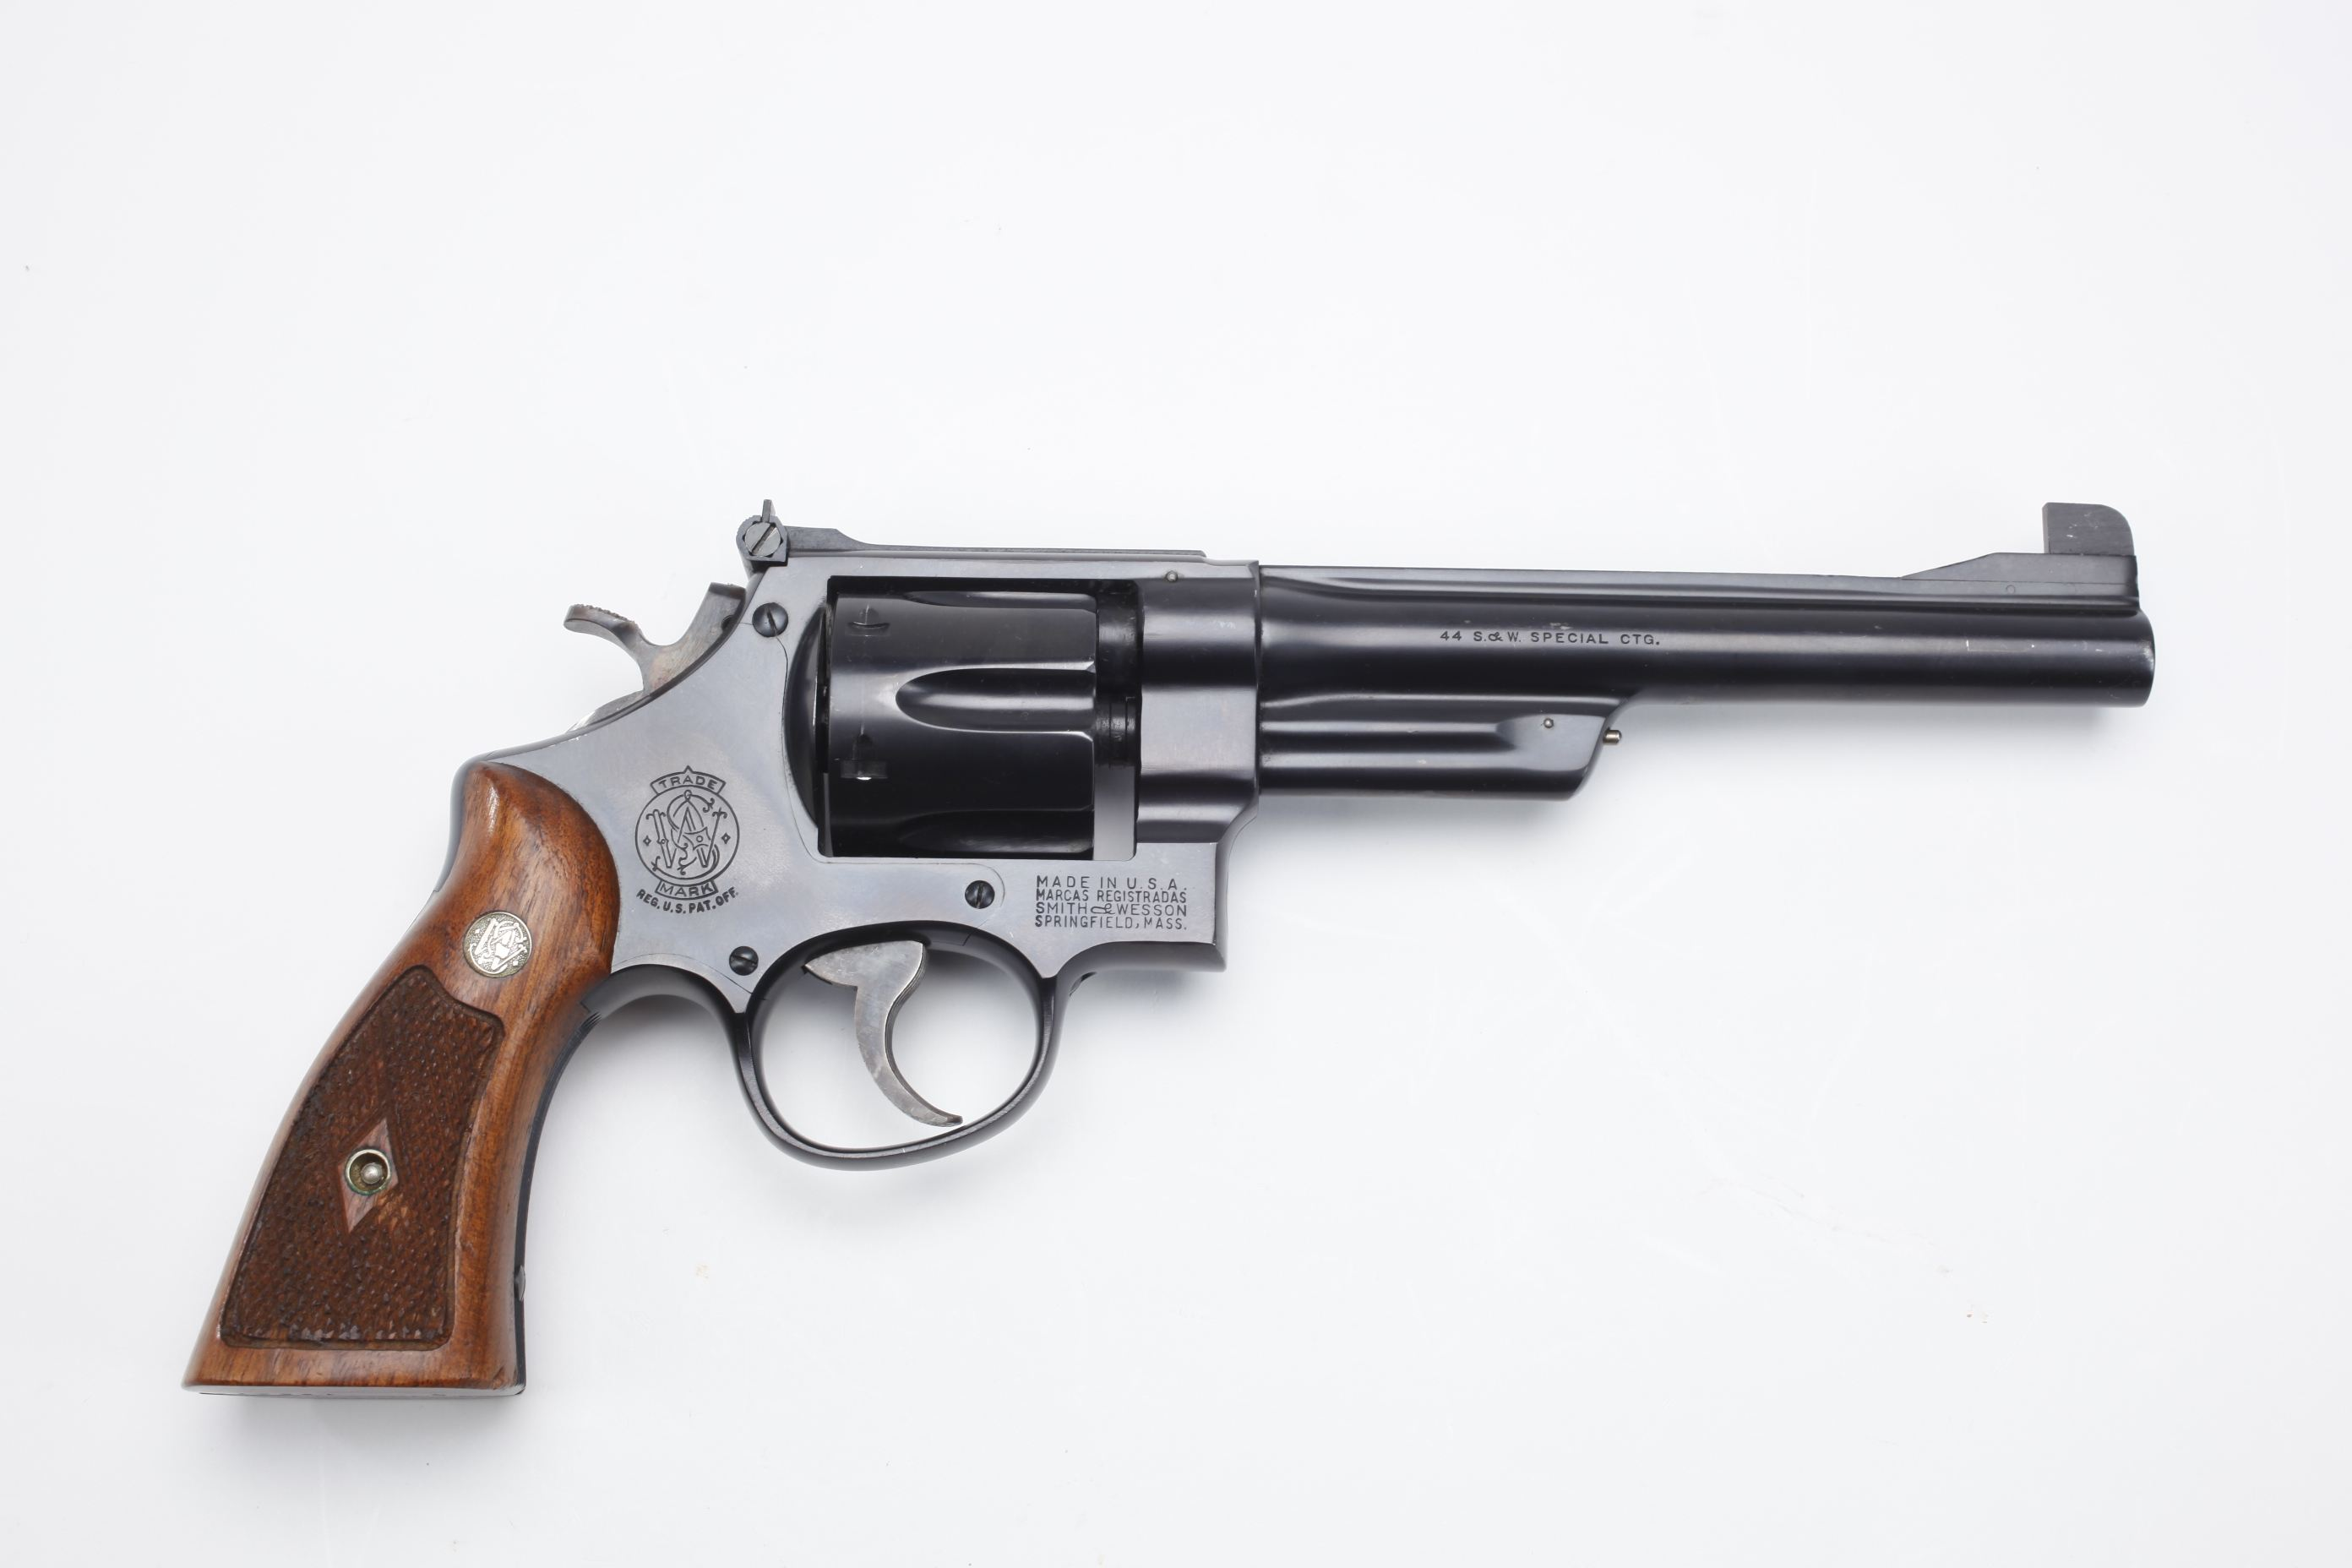 Smith & Wesson Model 24 Revolver